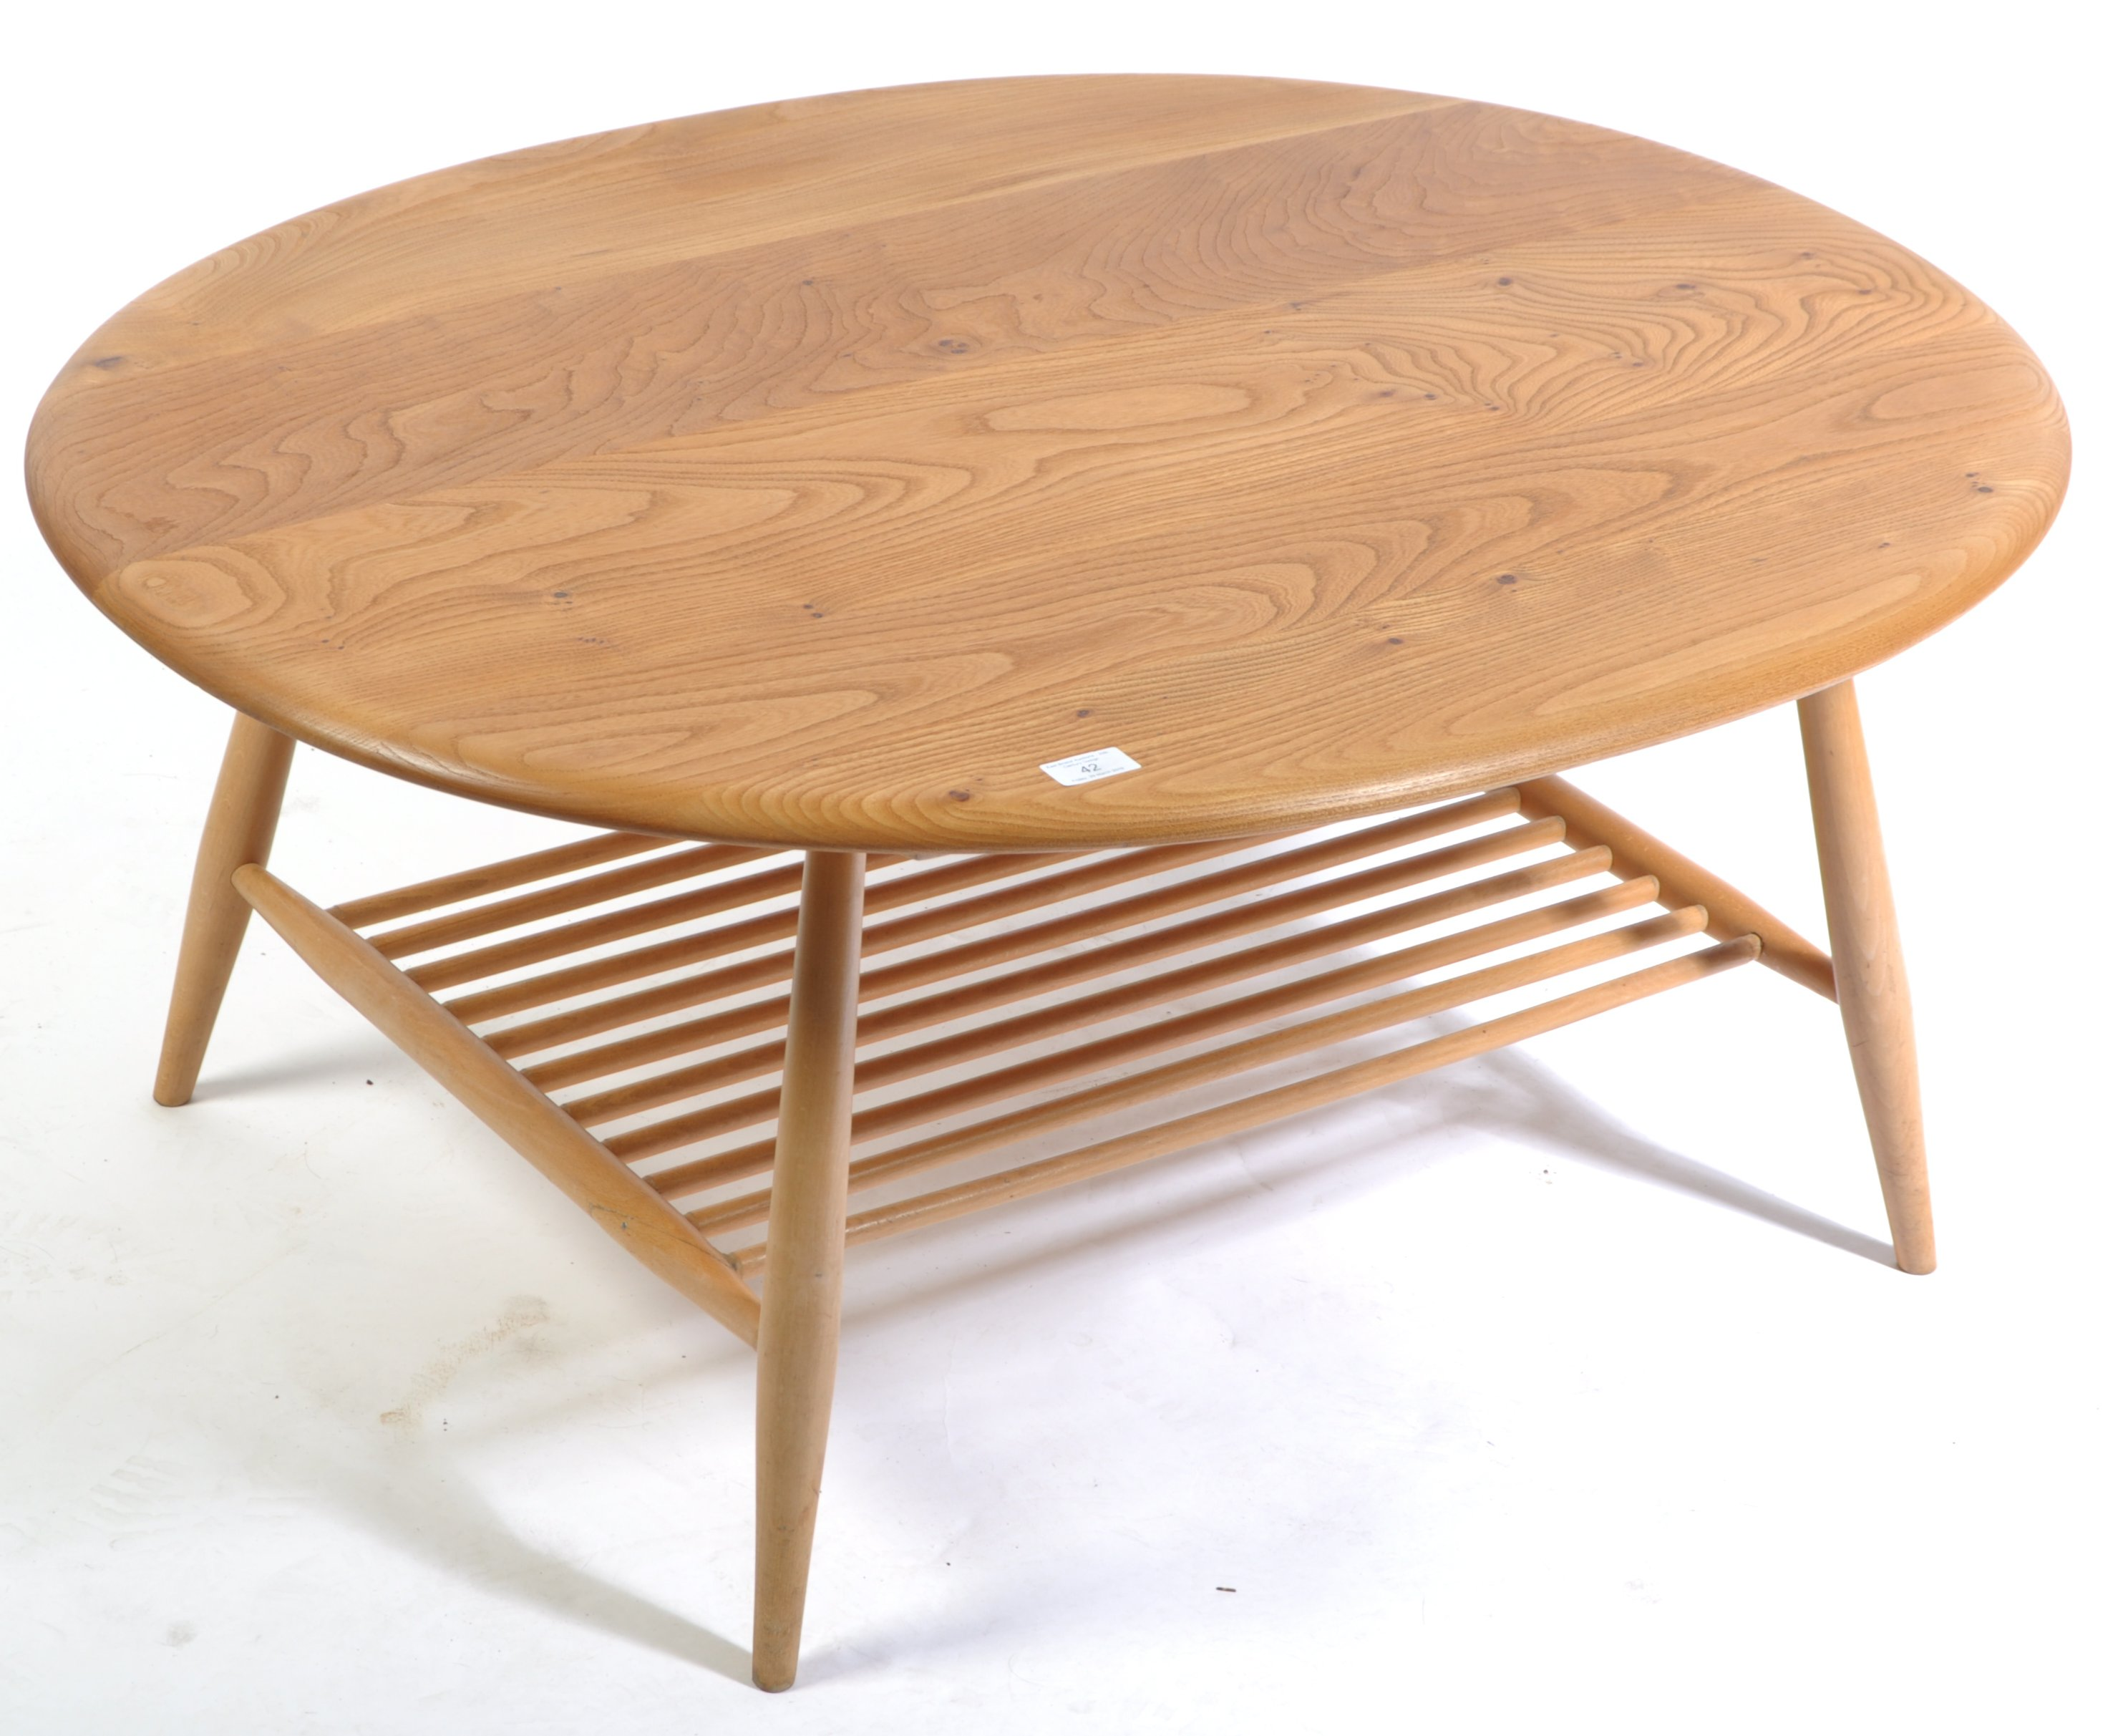 Lot 42 - ERCOL WINDSOR 454 BEECH AND ELM COFFEE TABLE BY LUCIAN ERCOLANI